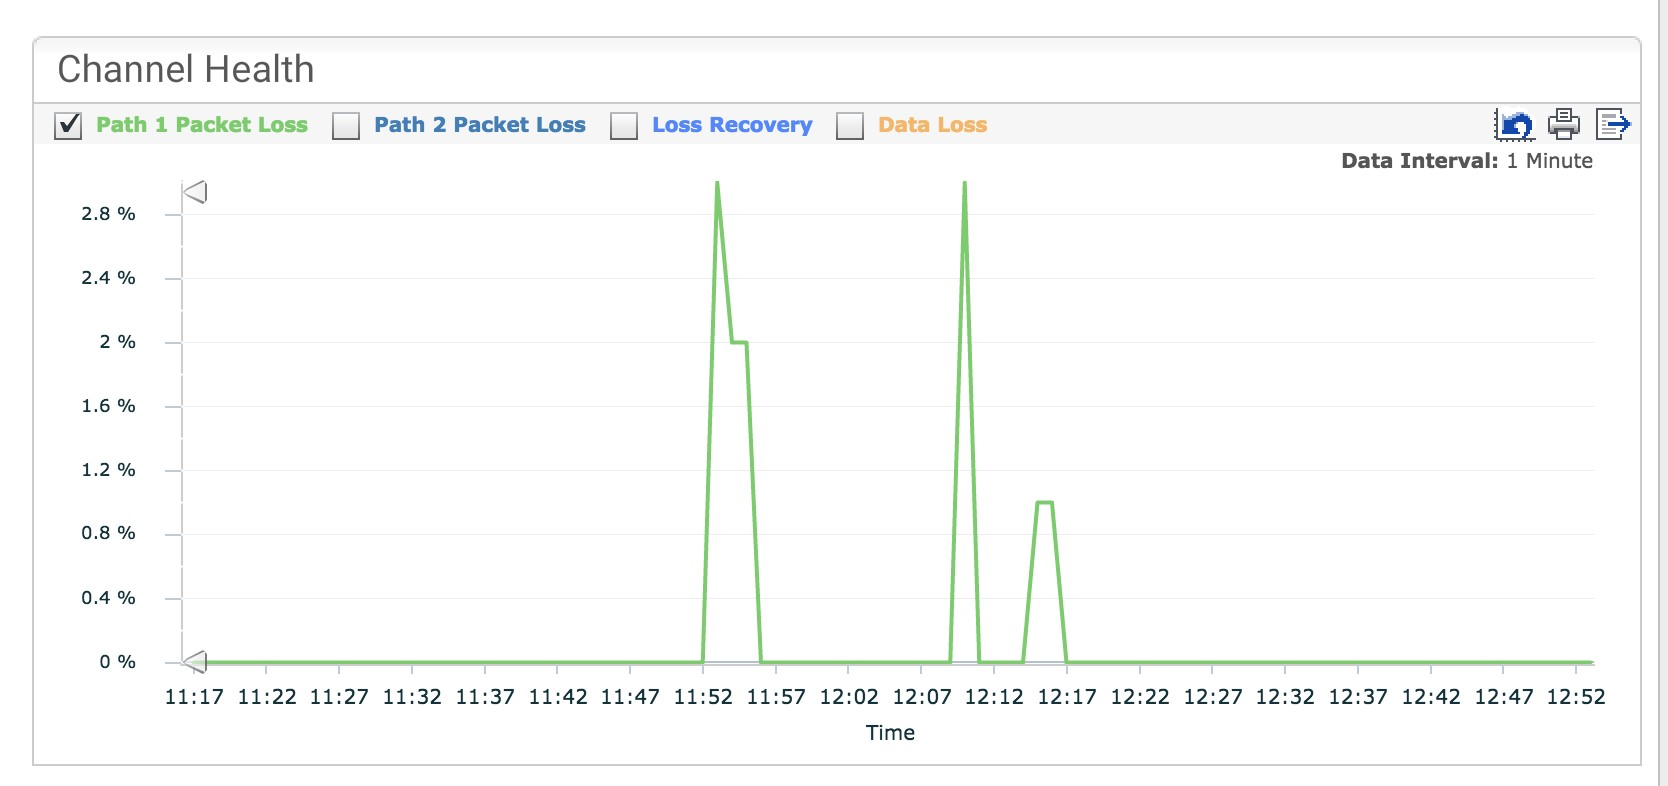 Packet Loss on Path 1